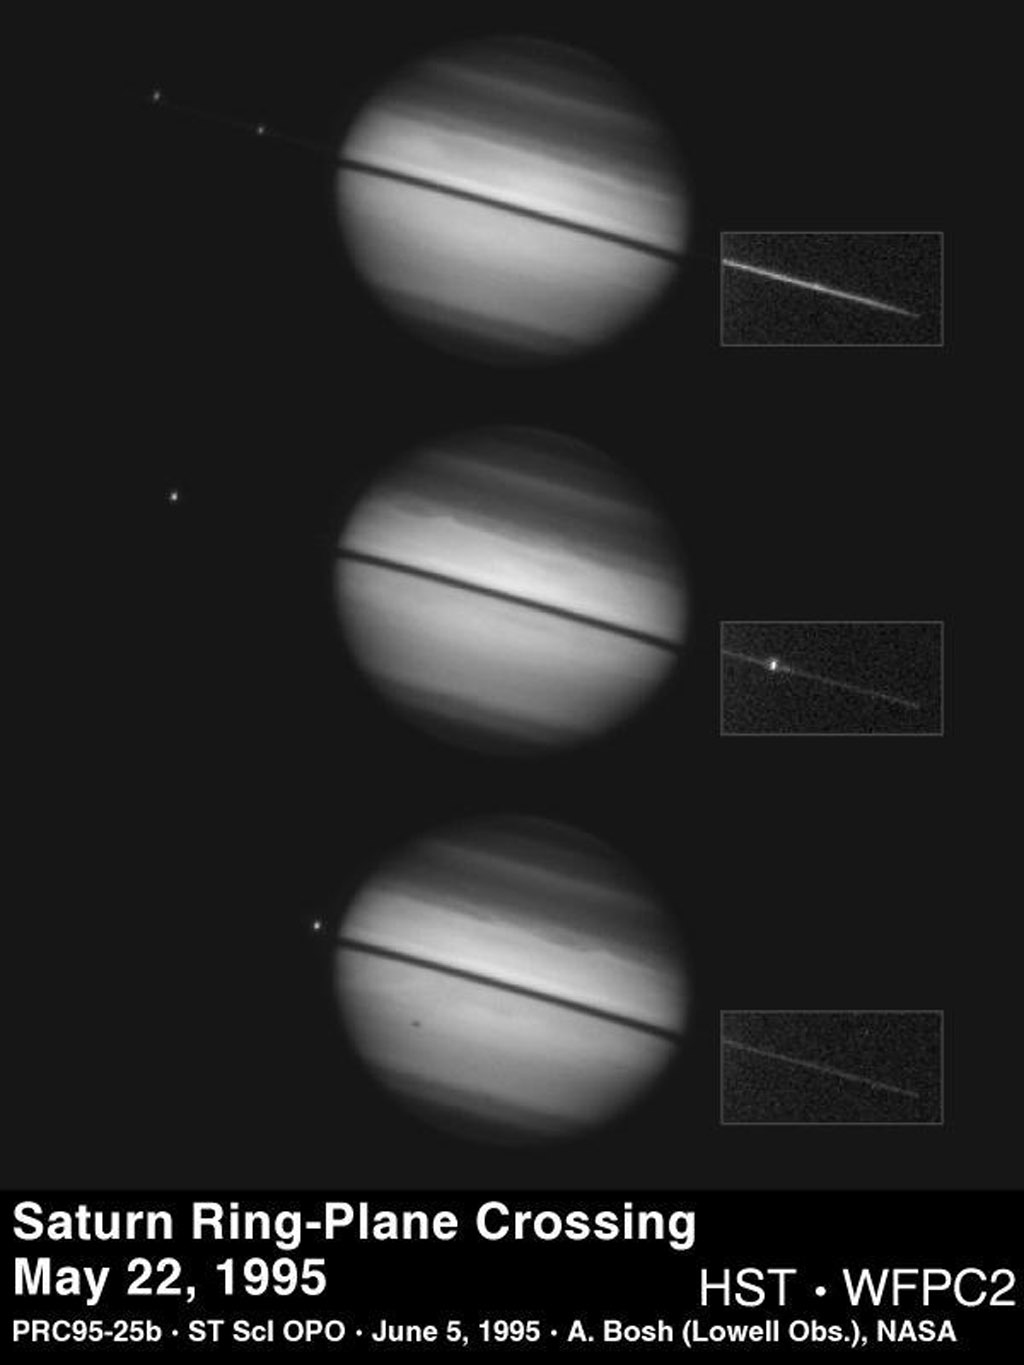 This sequence of images from NASA's Hubble Space Telescope, taken on May 22, 1995, documents a rare astronomical alignment, Saturn's magnificent ring system turned edge-on. This occurs when the Earth passes through Saturn's ring plane.